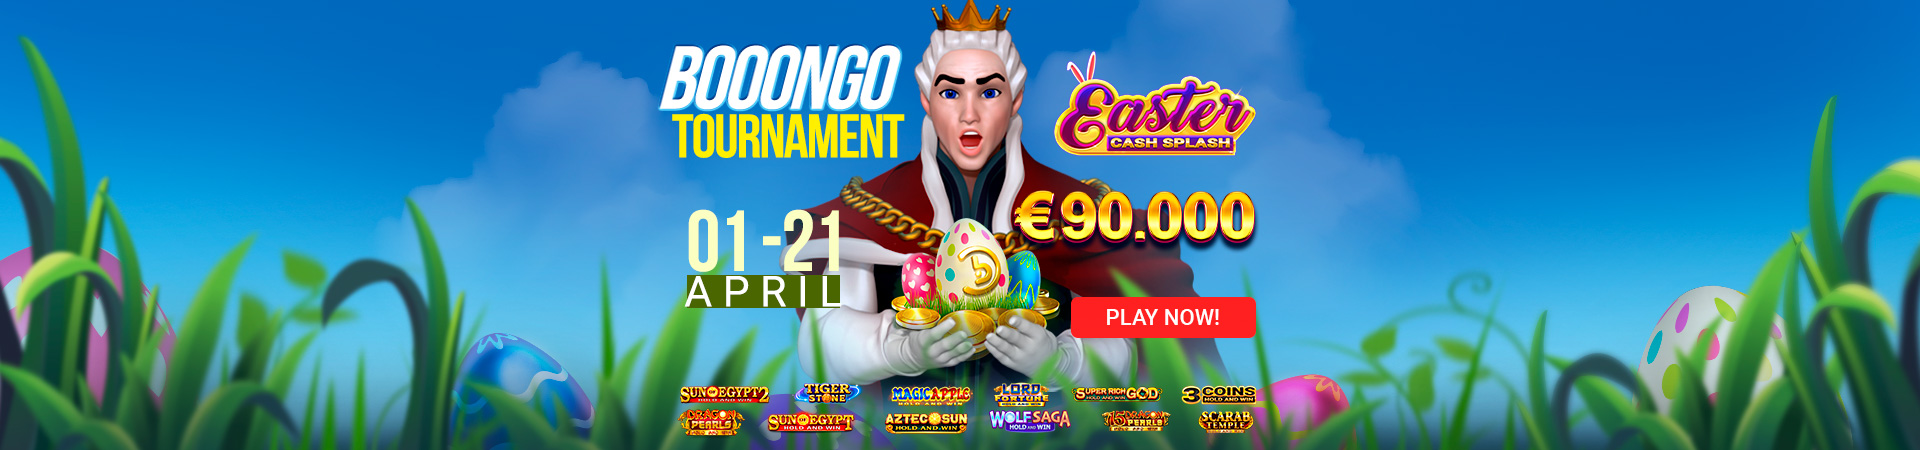 2021 03 King Billy English Booongo Tournament Easter Cash Splash 1920x450